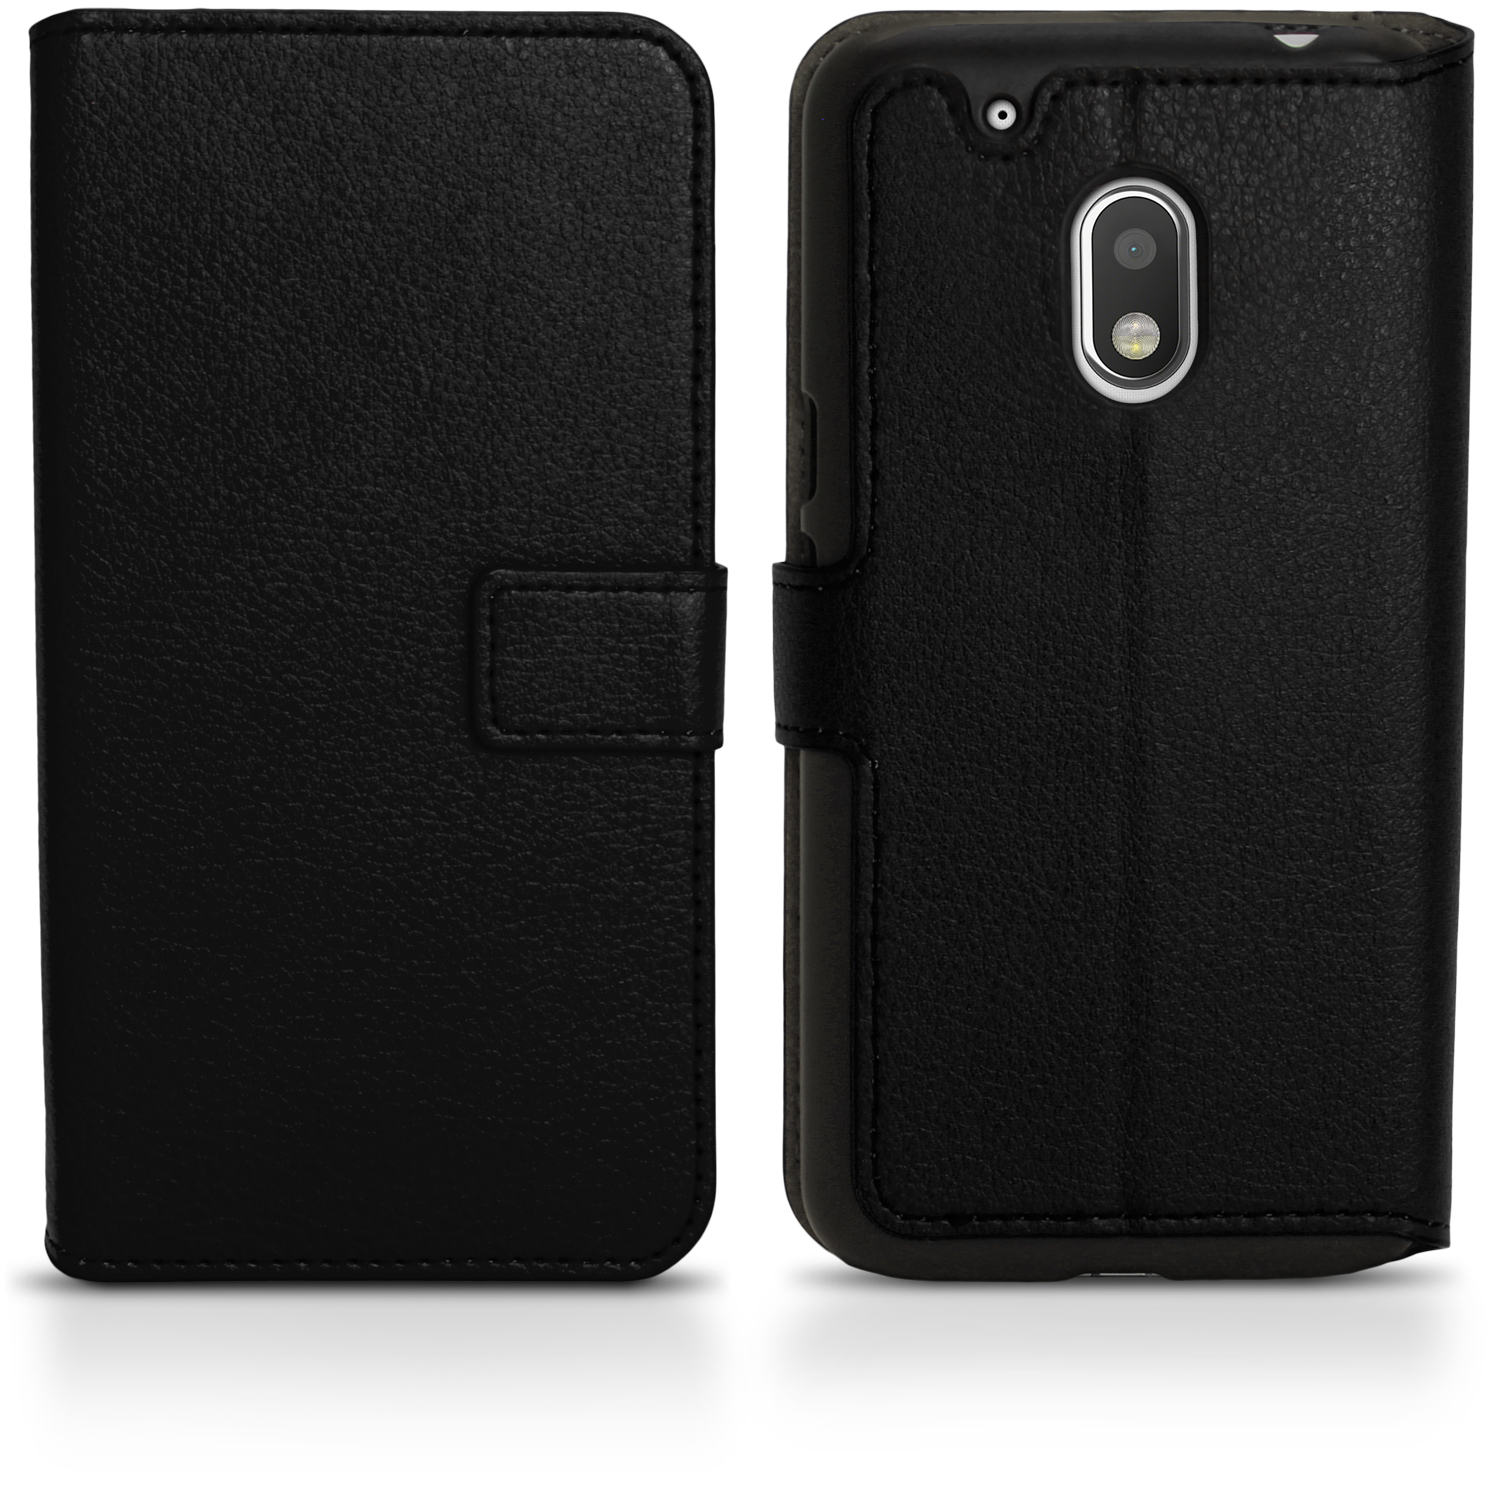 online store e45b4 b3fdc Details about PU Leather Skin Wallet Case for Motorola Moto G4 Play XT1601  Flip Stand Cover